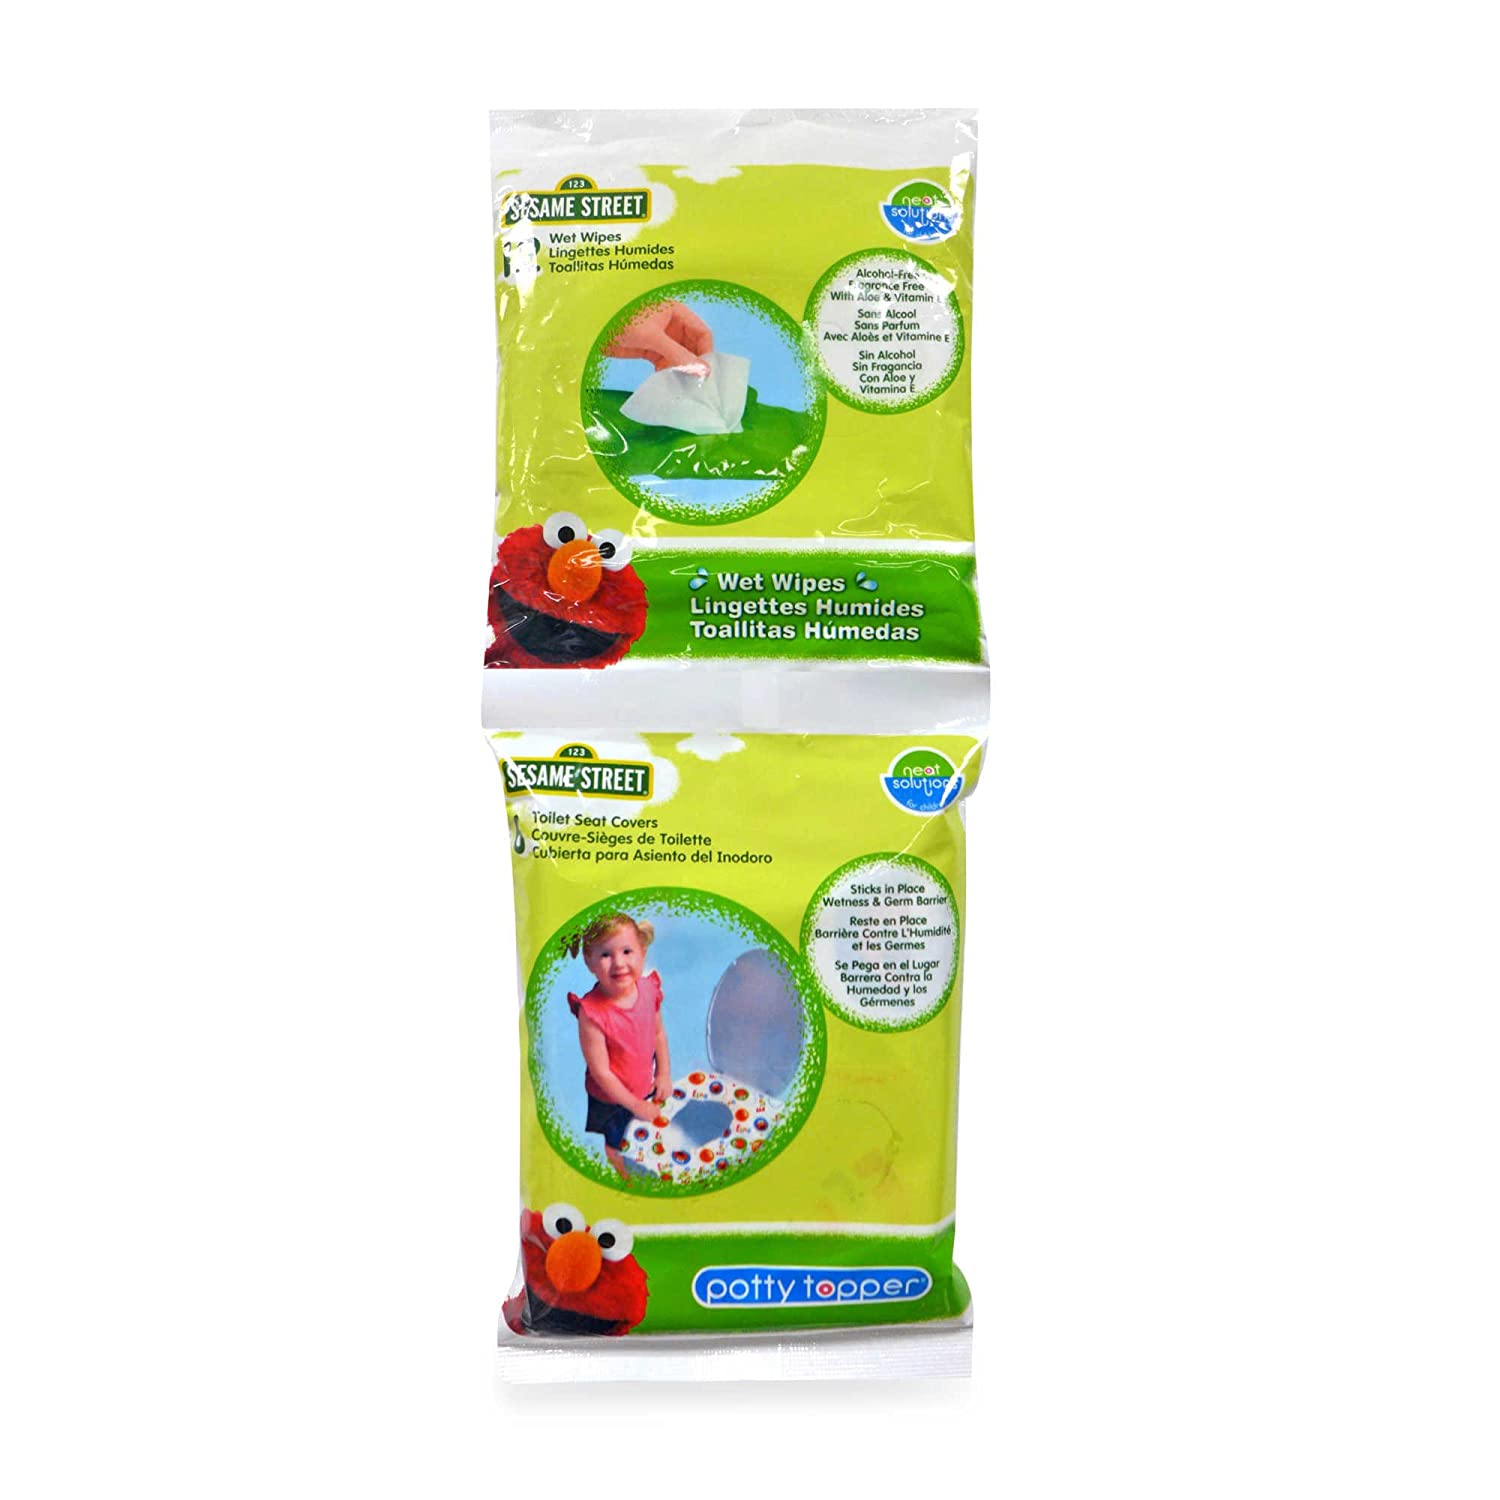 Amazon.com : Sesame Street Potty Combo Pack - 6 Count Potty Topper & 12 Count Wipes : Baby